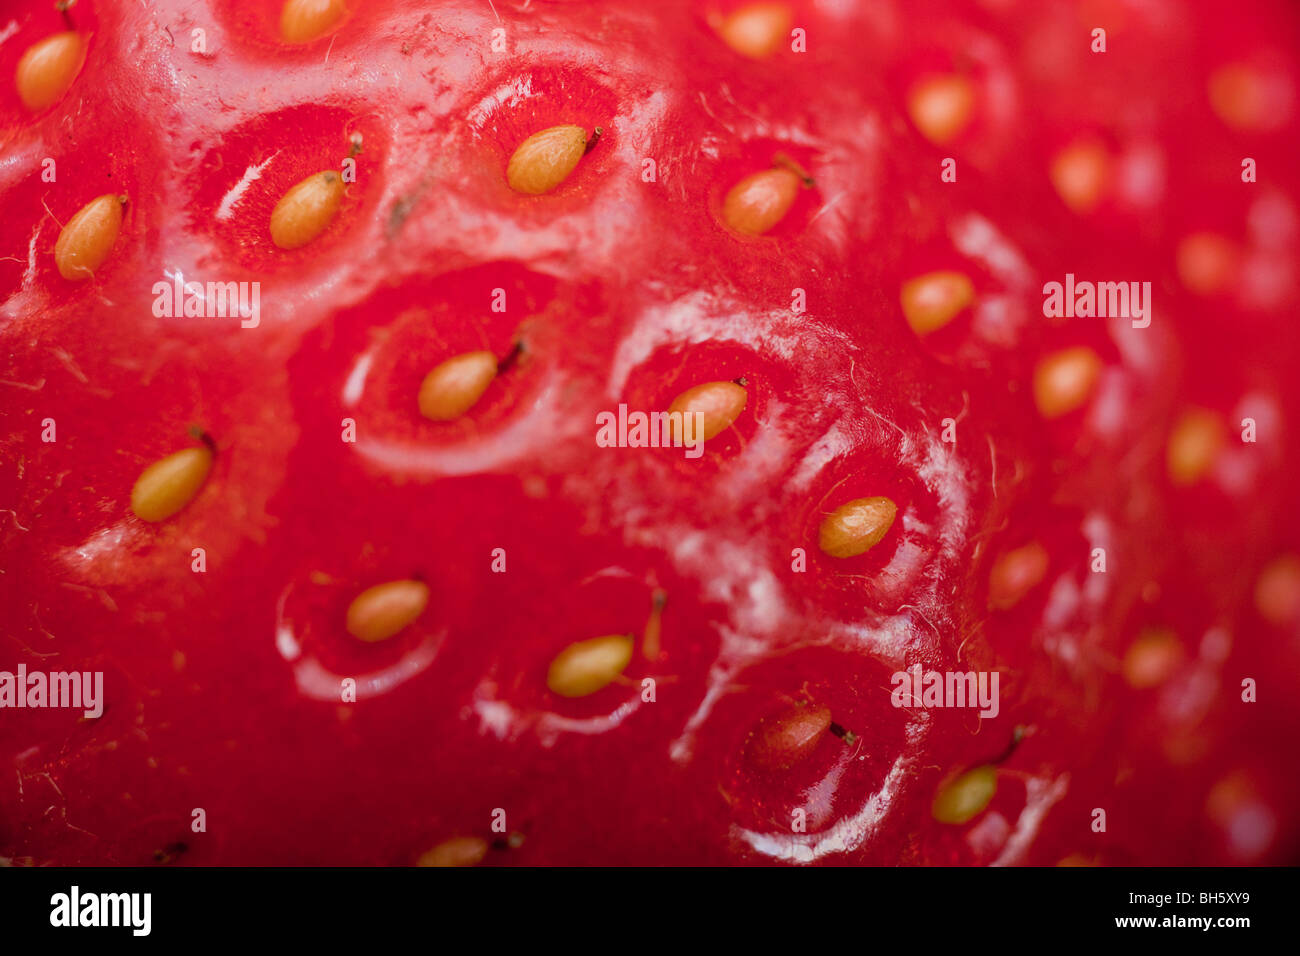 Extreme macro shot of a strawberry. Individual seeds can be seen. - Stock Image